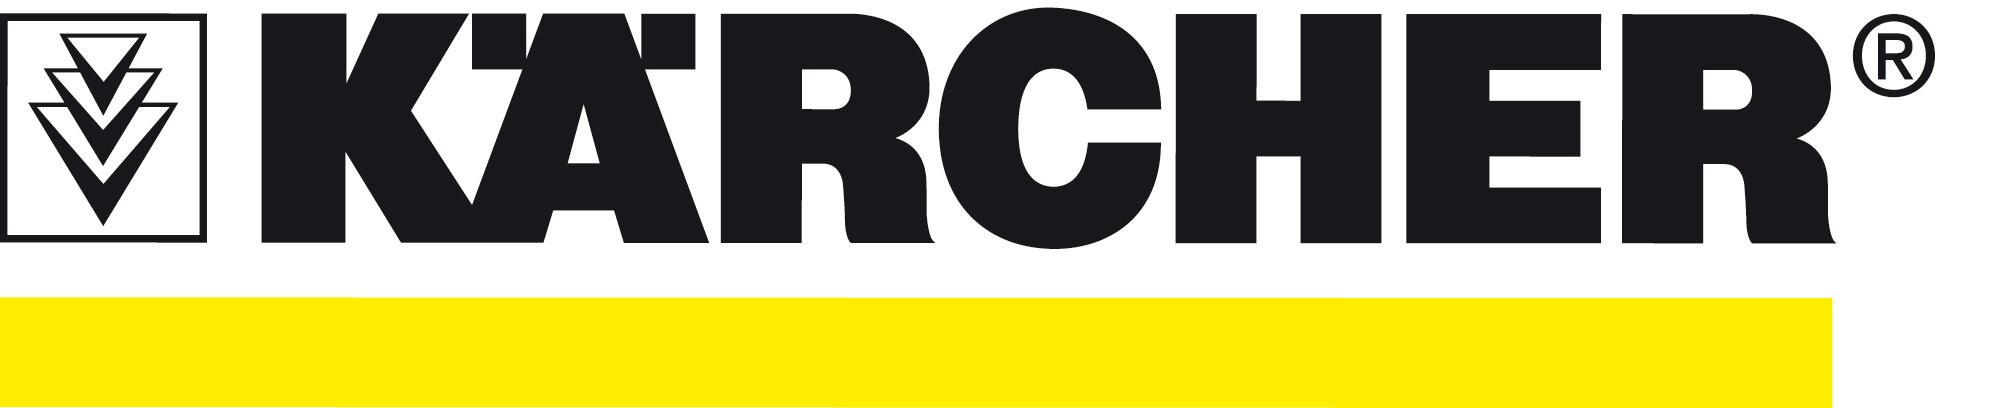 Karcher - the professional hoover